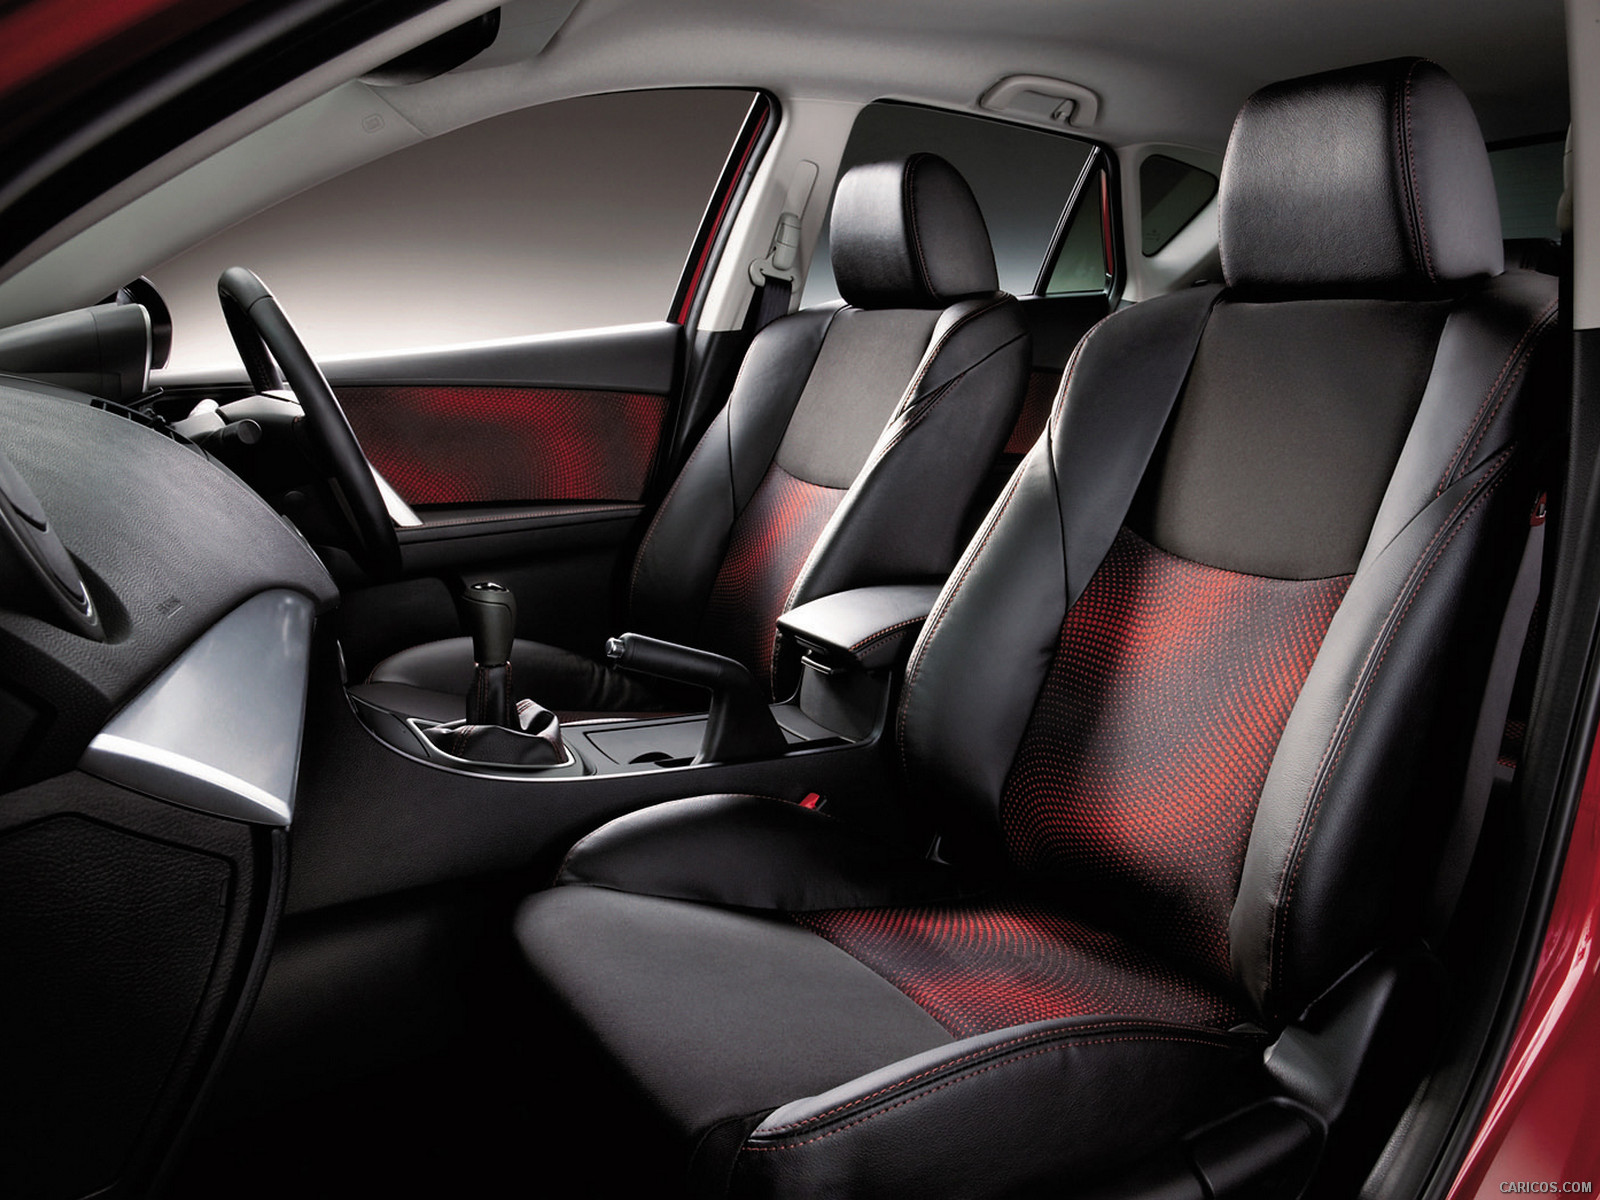 2012 Mazda MazdaSpeed 3   Interior Wallpaper 5 1600x1200